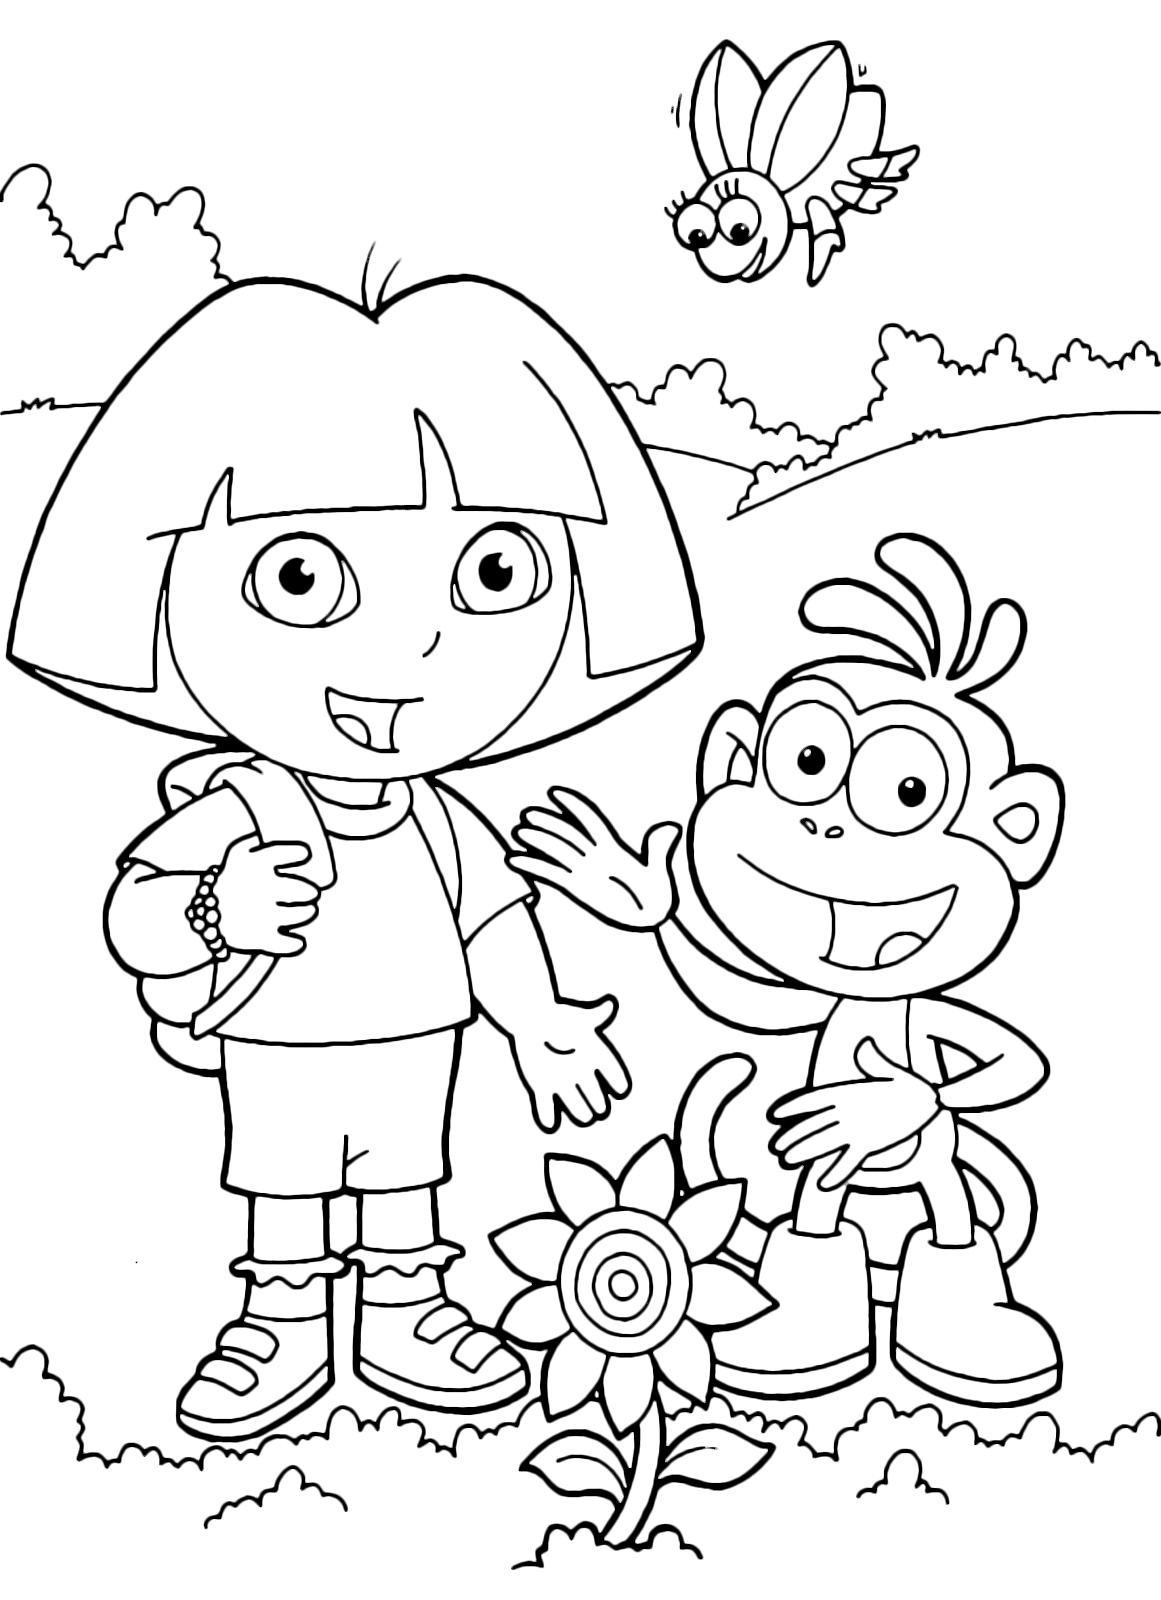 Dora the Explorer - Dora and Boots found a flower